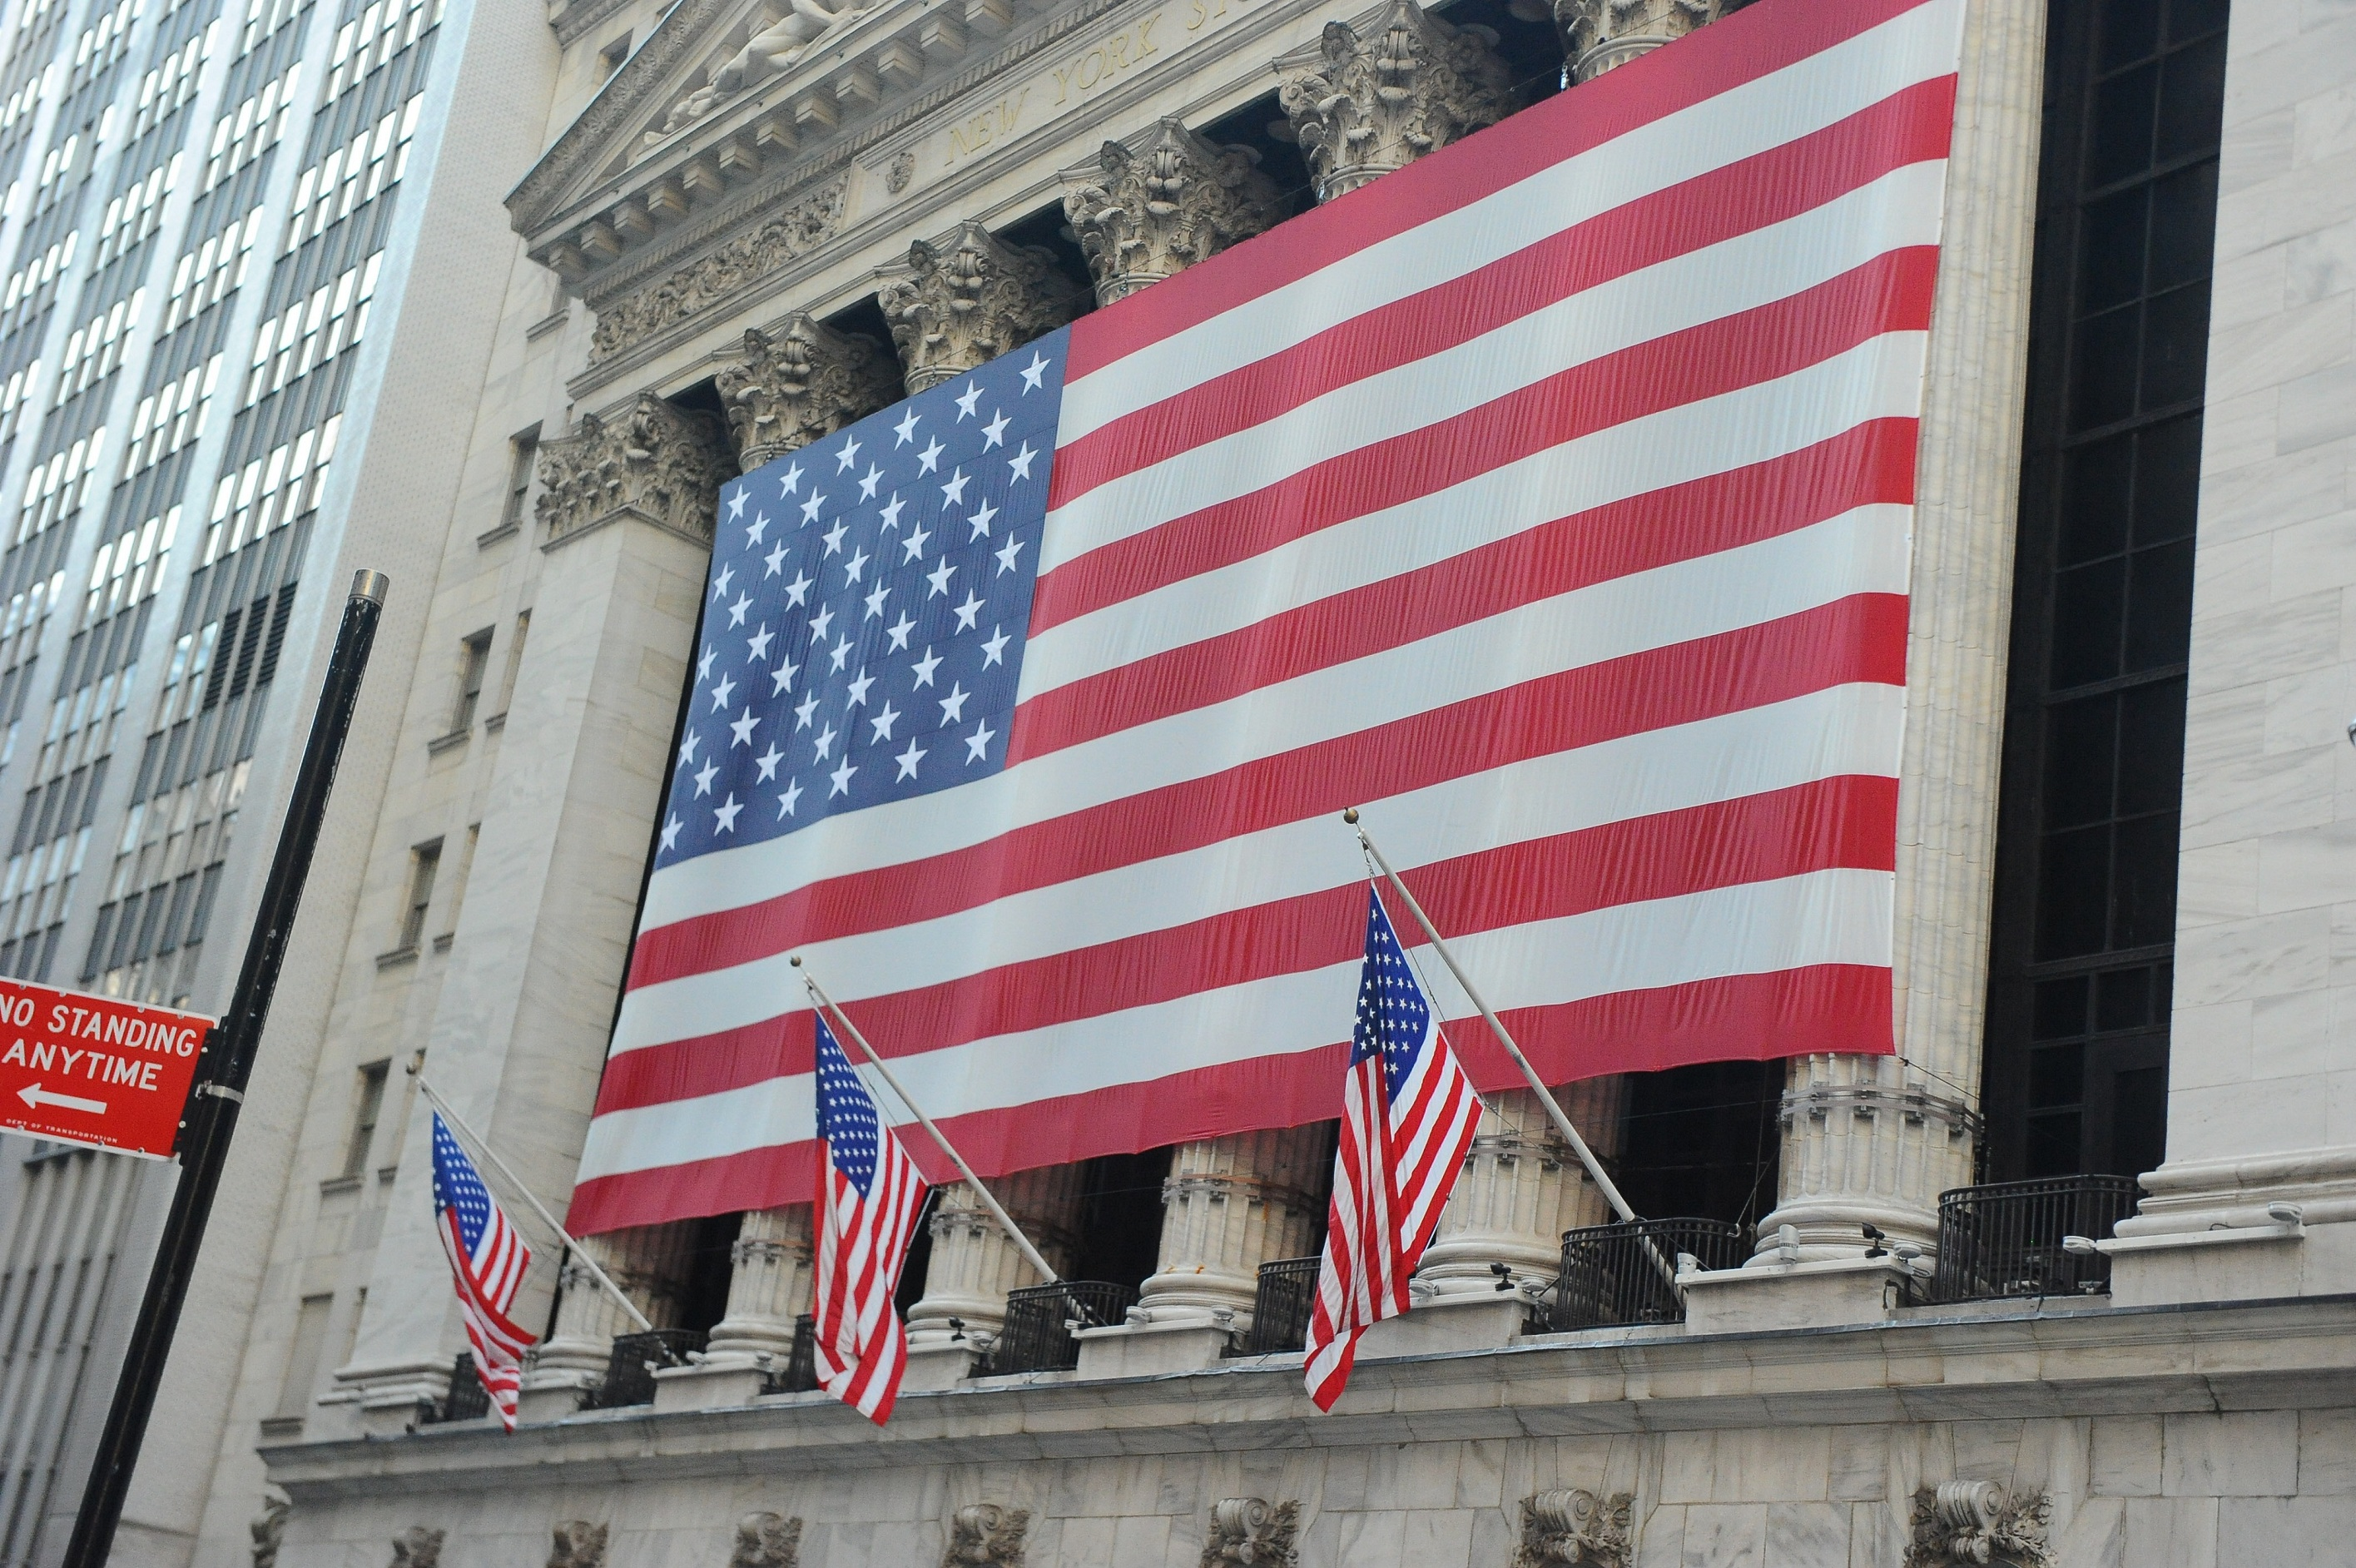 Wall Street adorned with US flags | Caravan